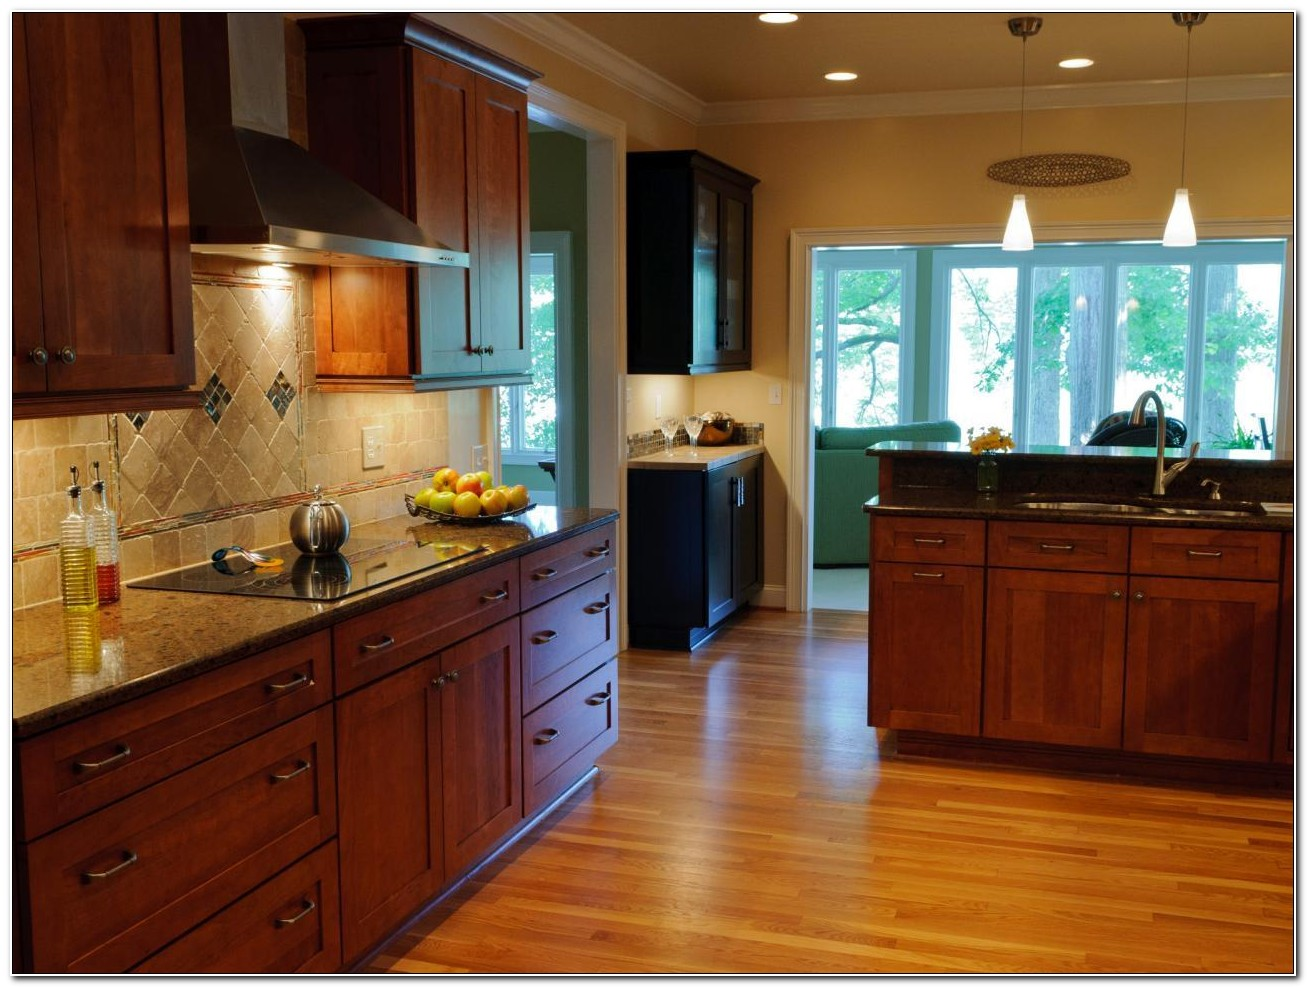 Refinishing Wood Cabinets With Paint